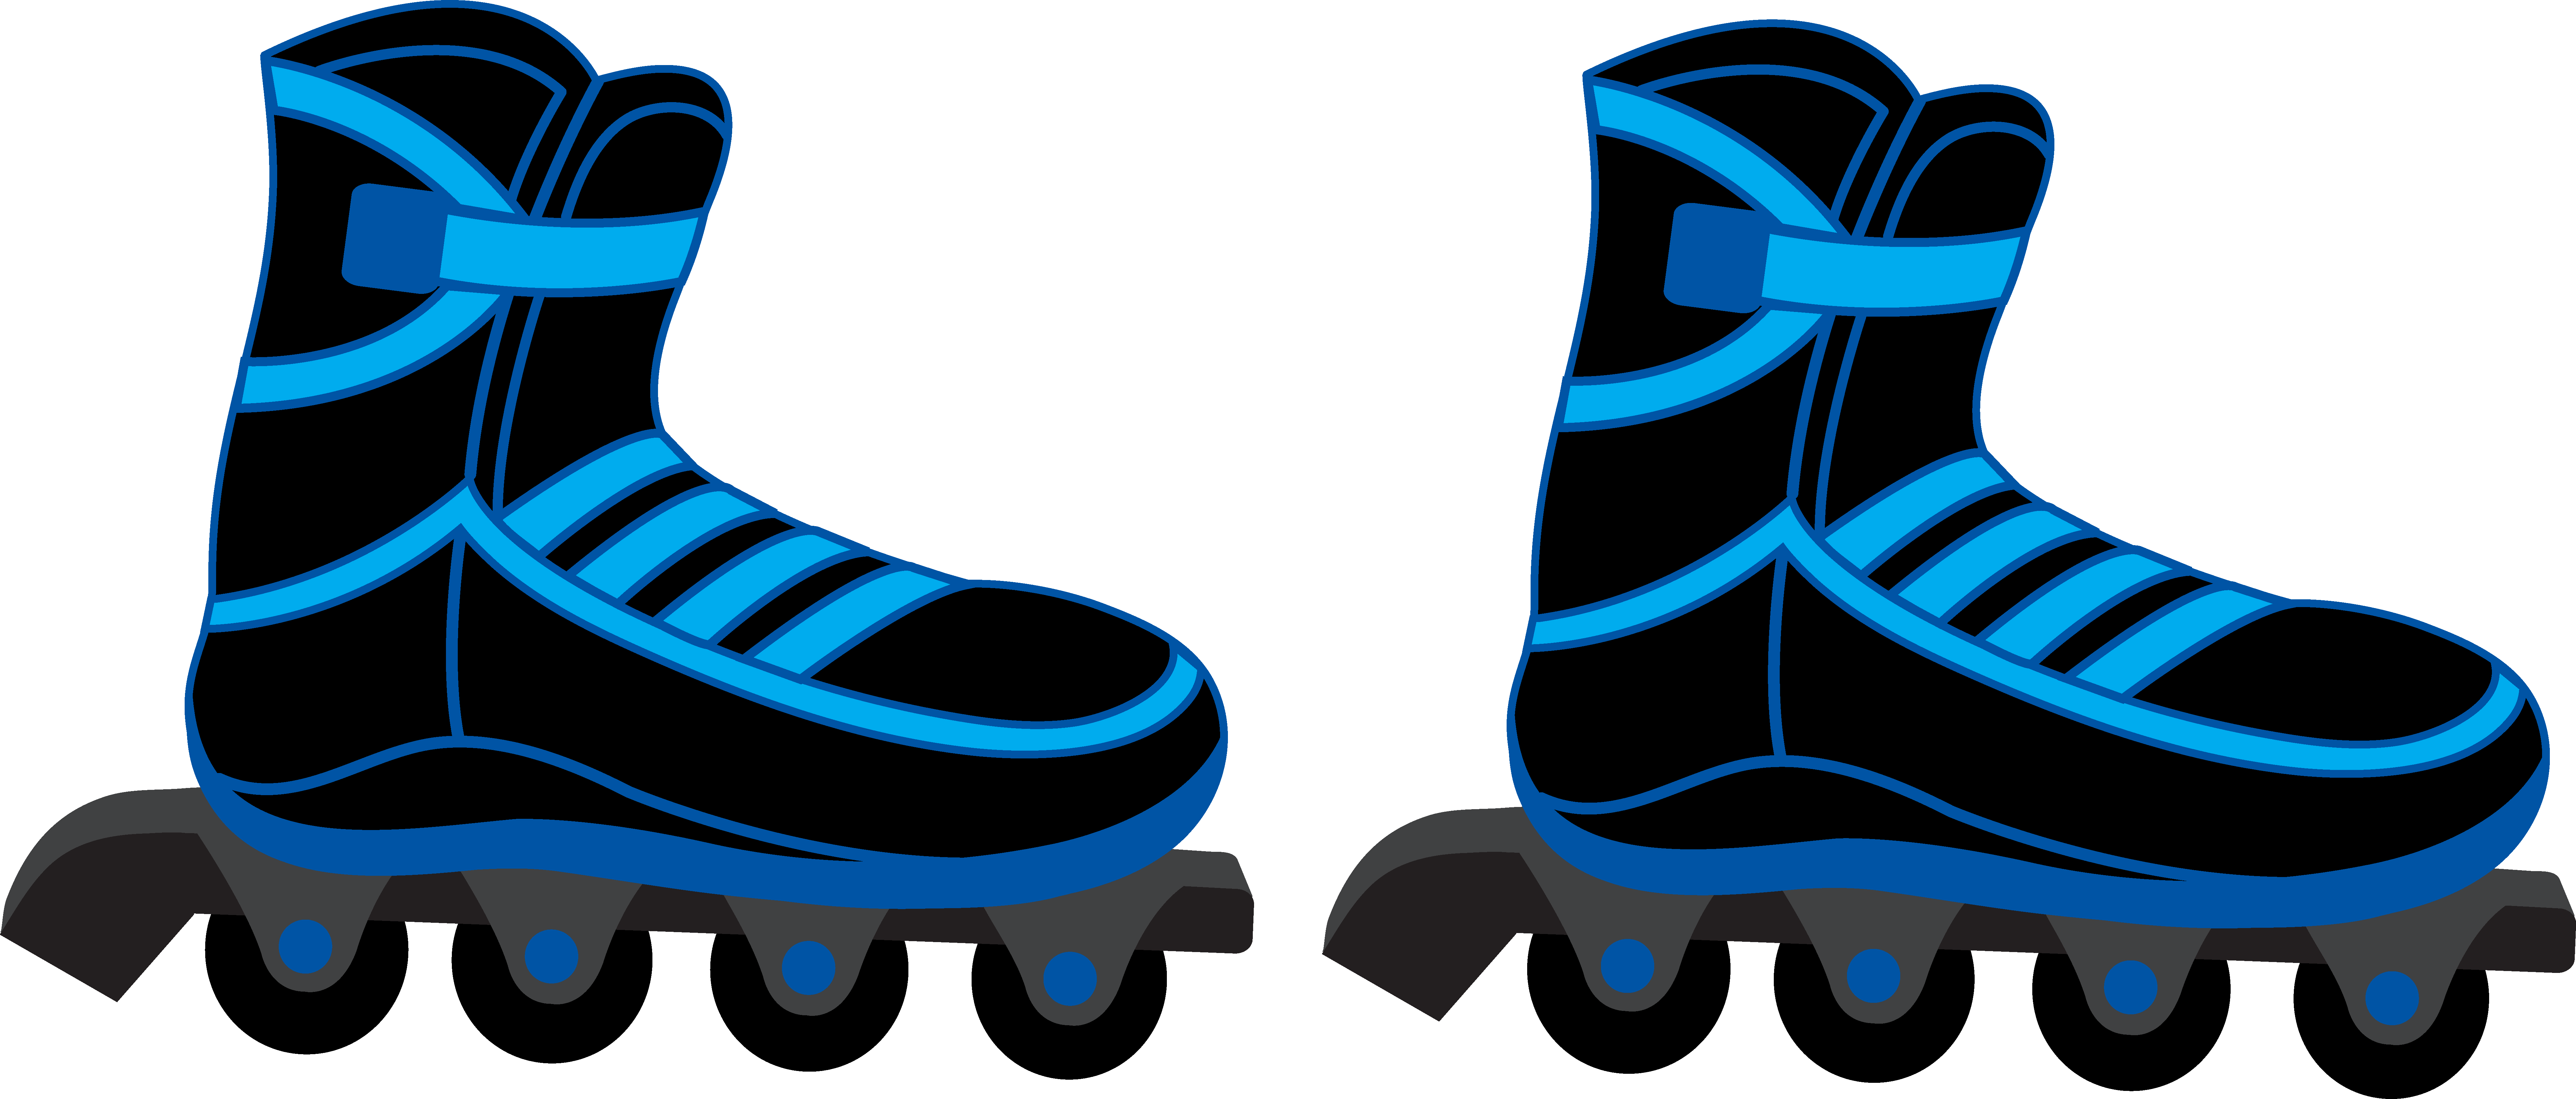 Cool Blue and Black Rollerbla - Roller Skate Clipart